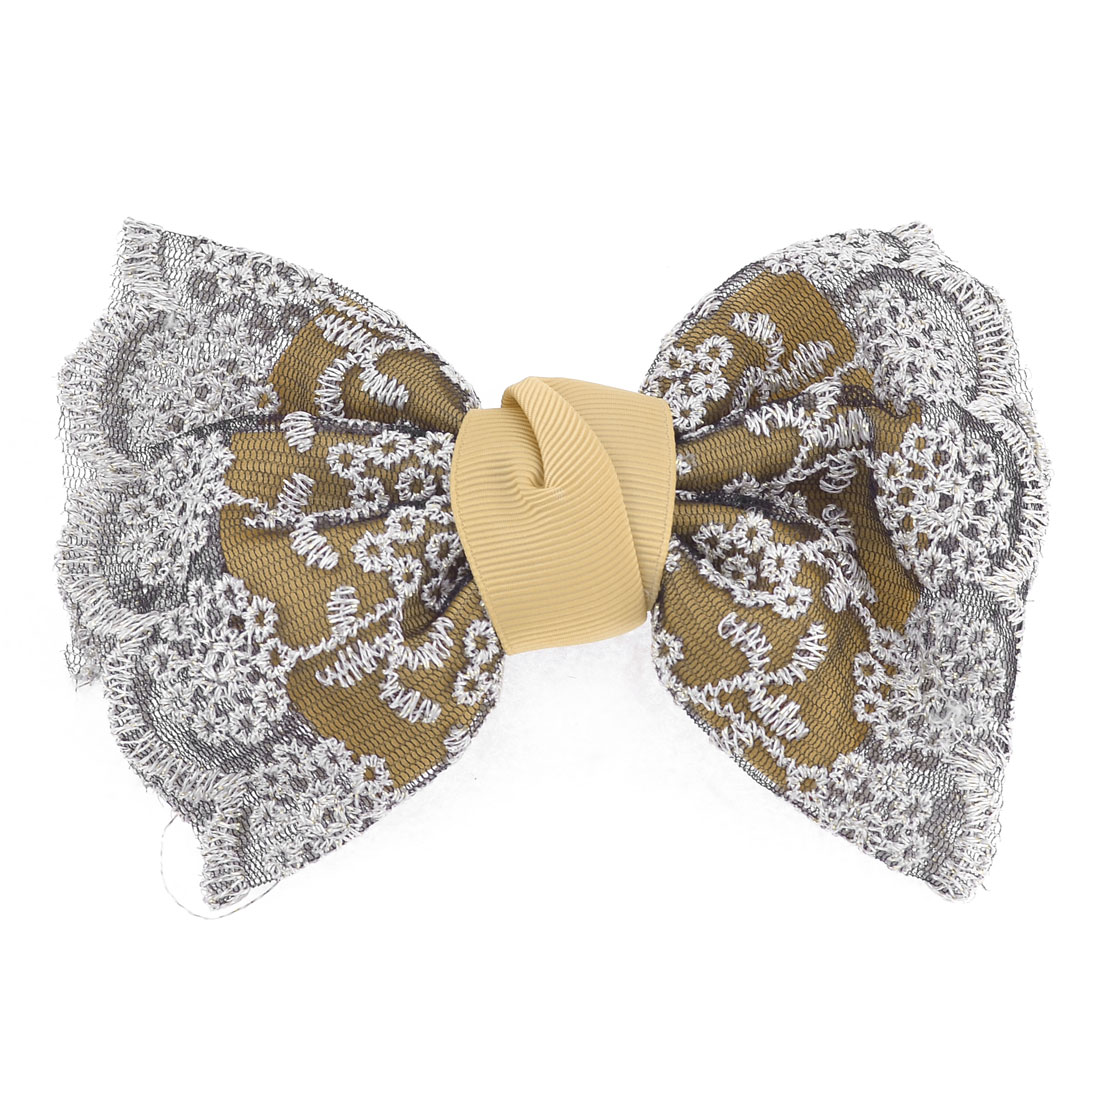 Embroidered Lace Bowknot Ponytail Barrette Hair Clip Clasp Beige